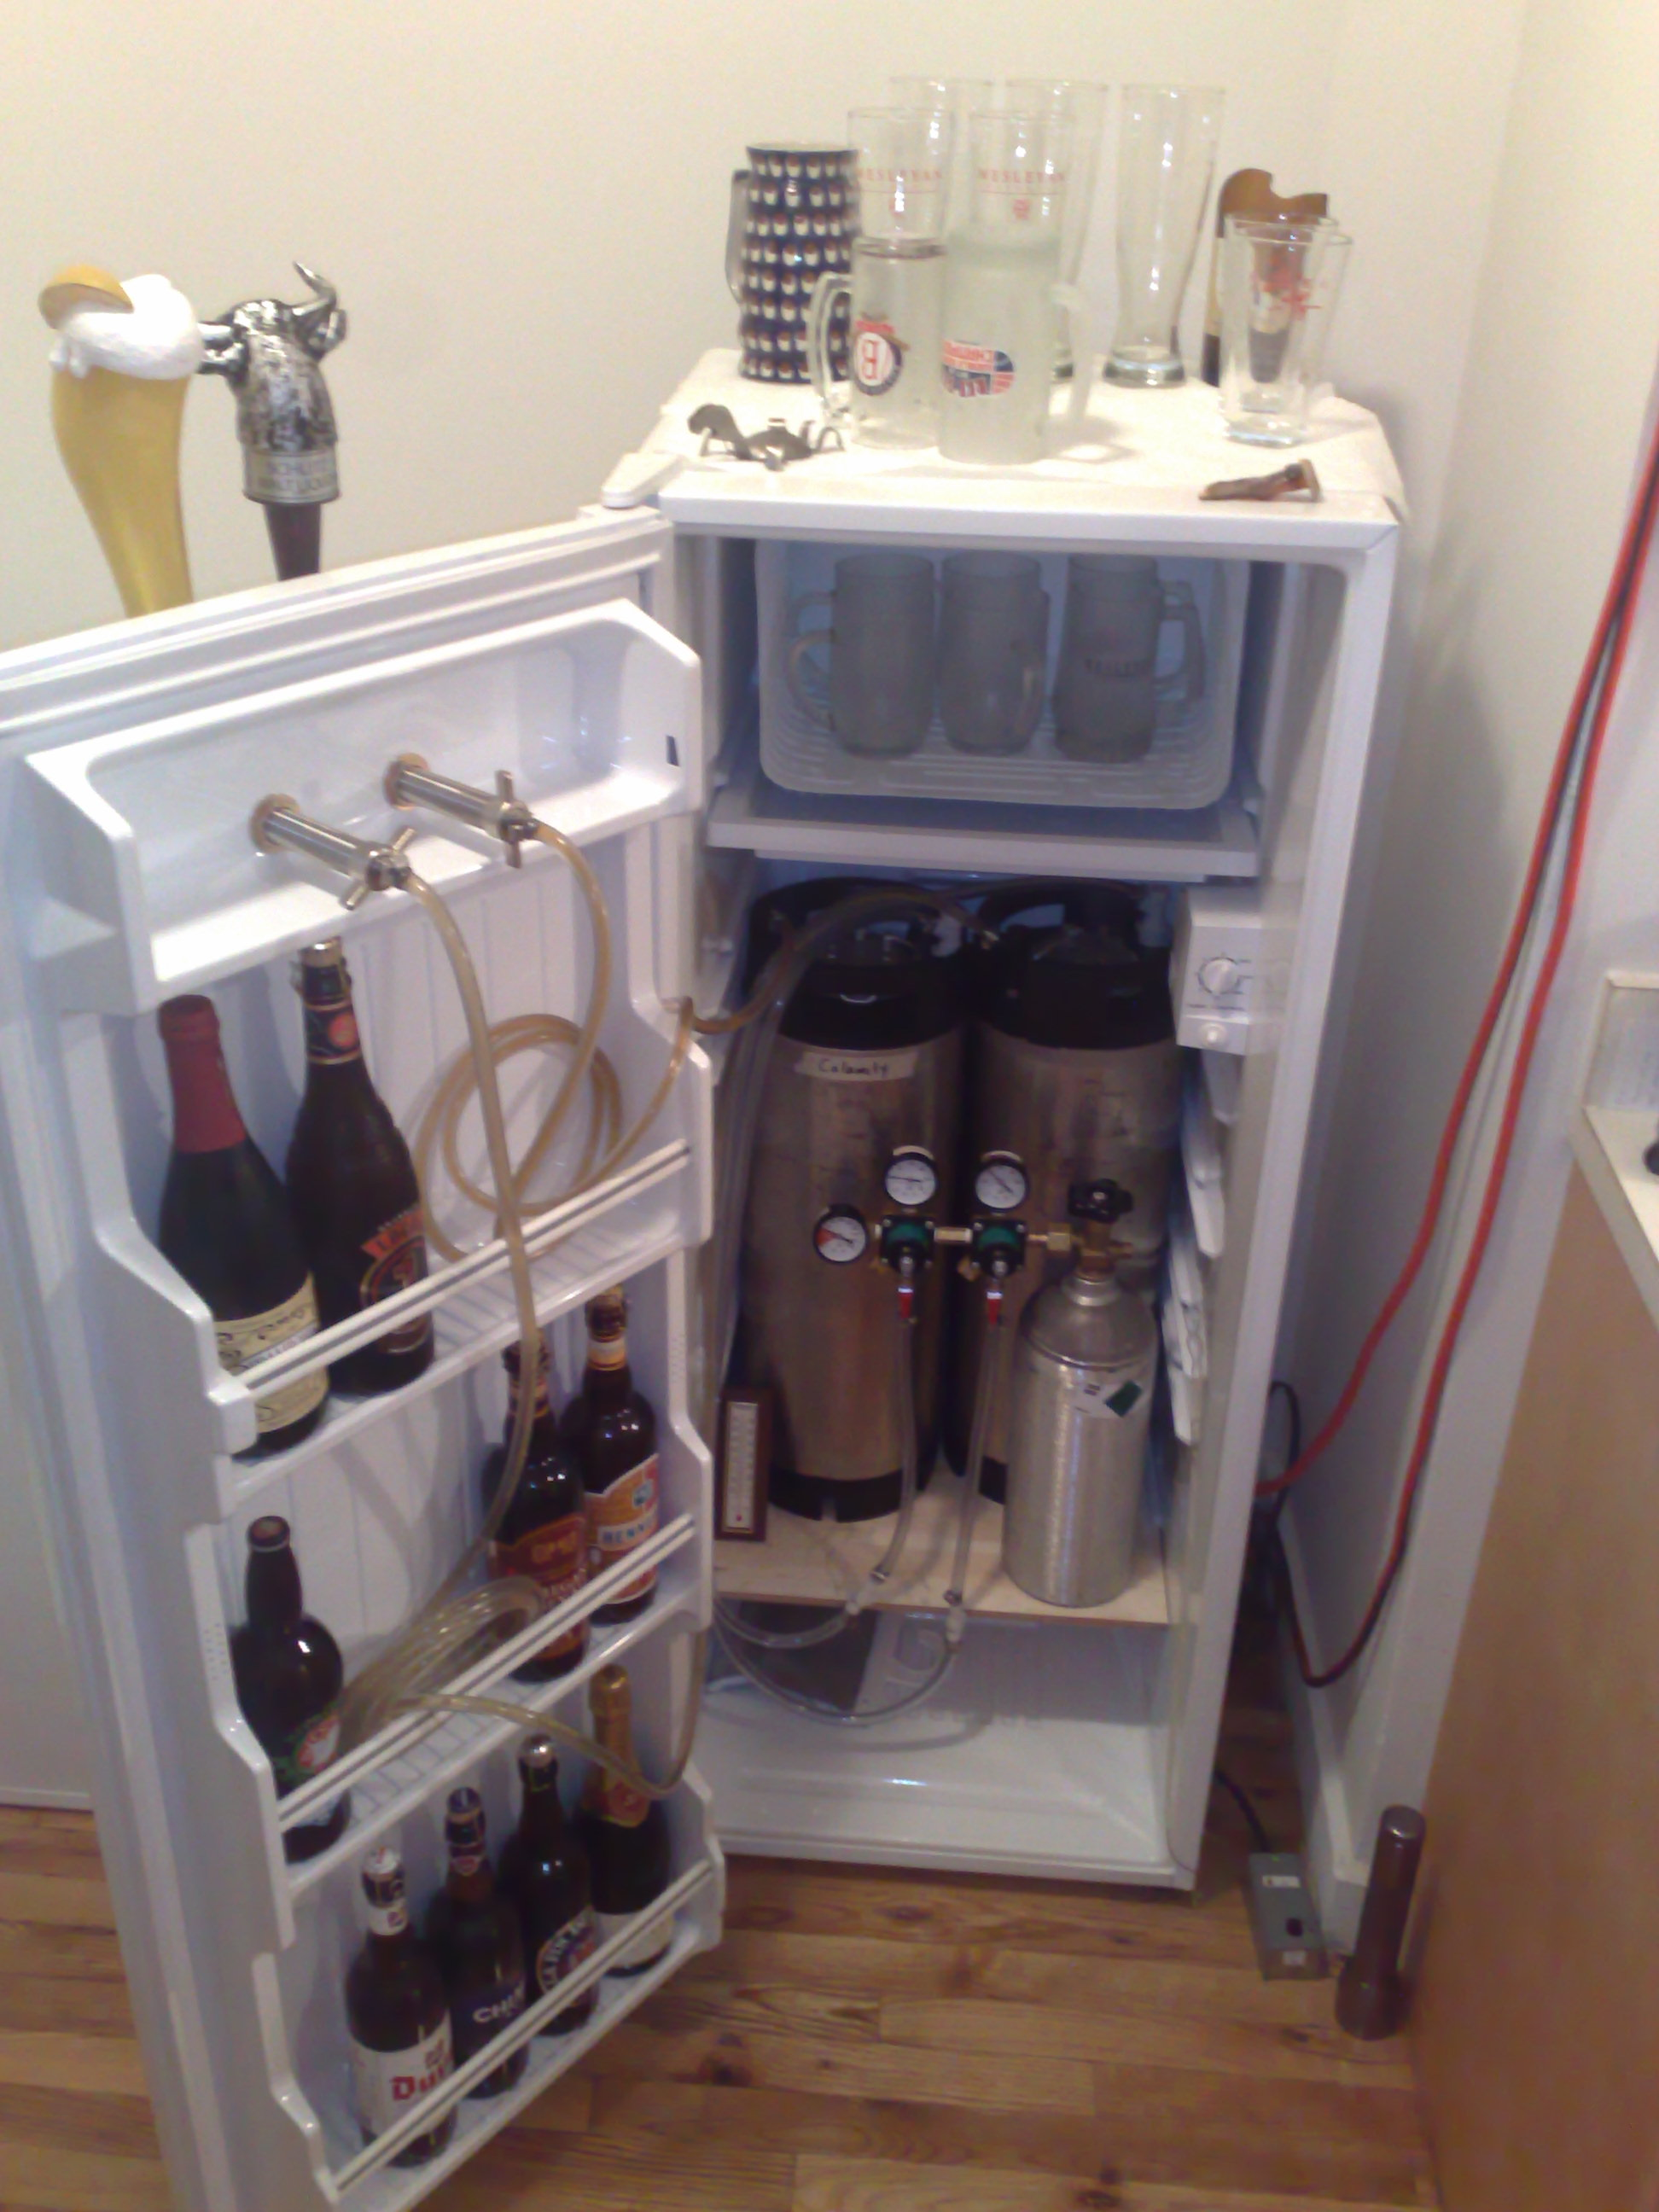 How to make a kegerator best kegerator guide Home bar furniture with kegerator